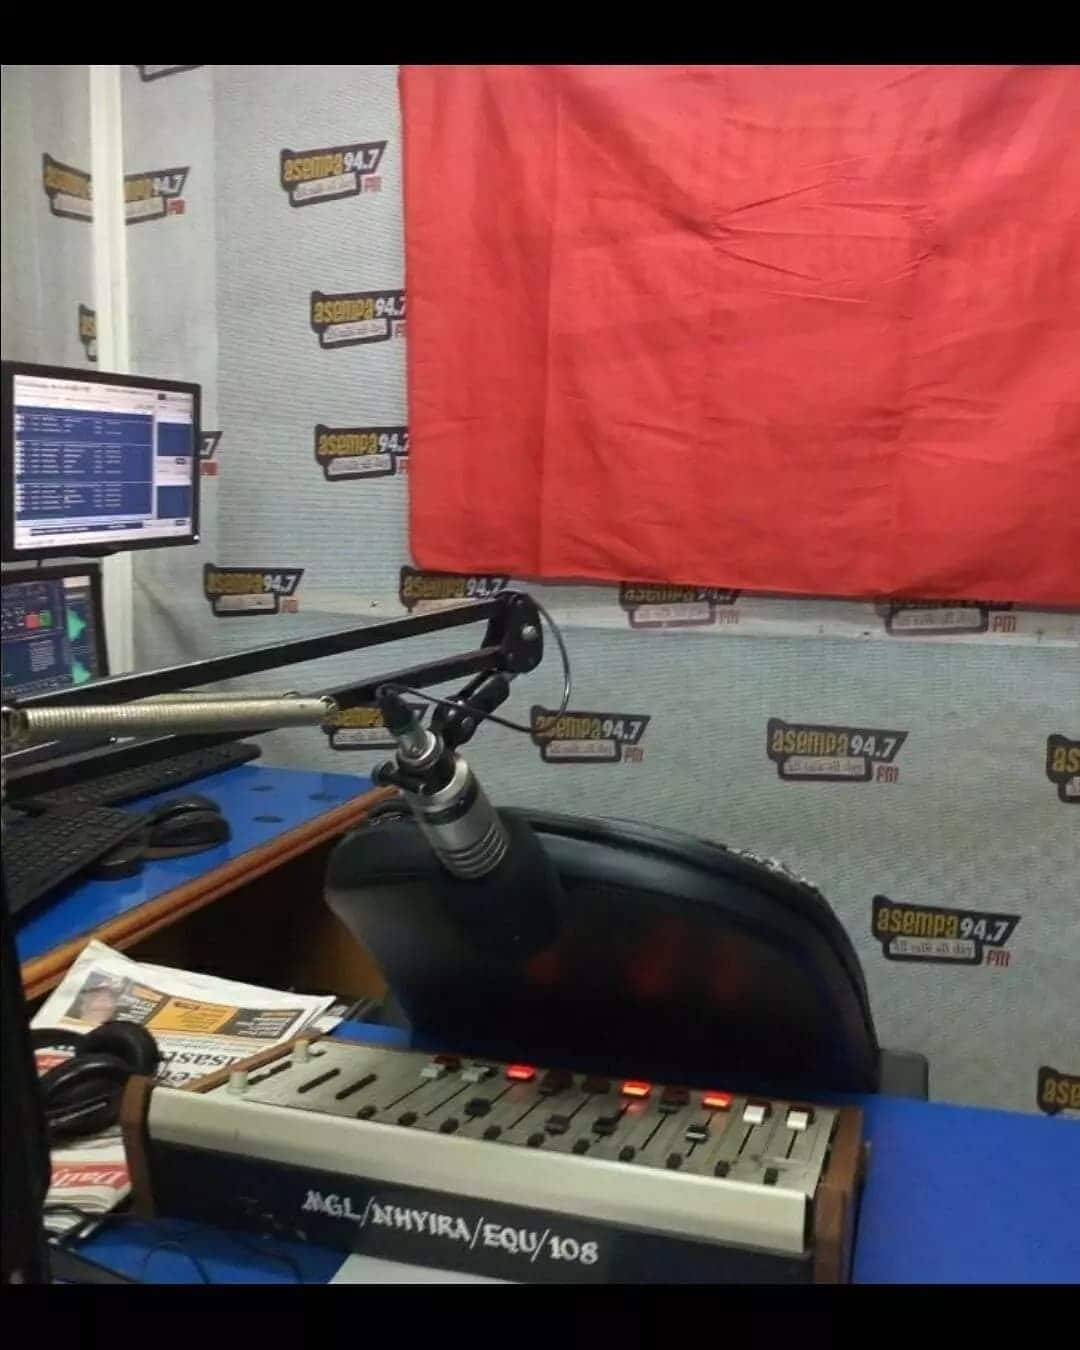 KABA's seat at Asempa studio turned over